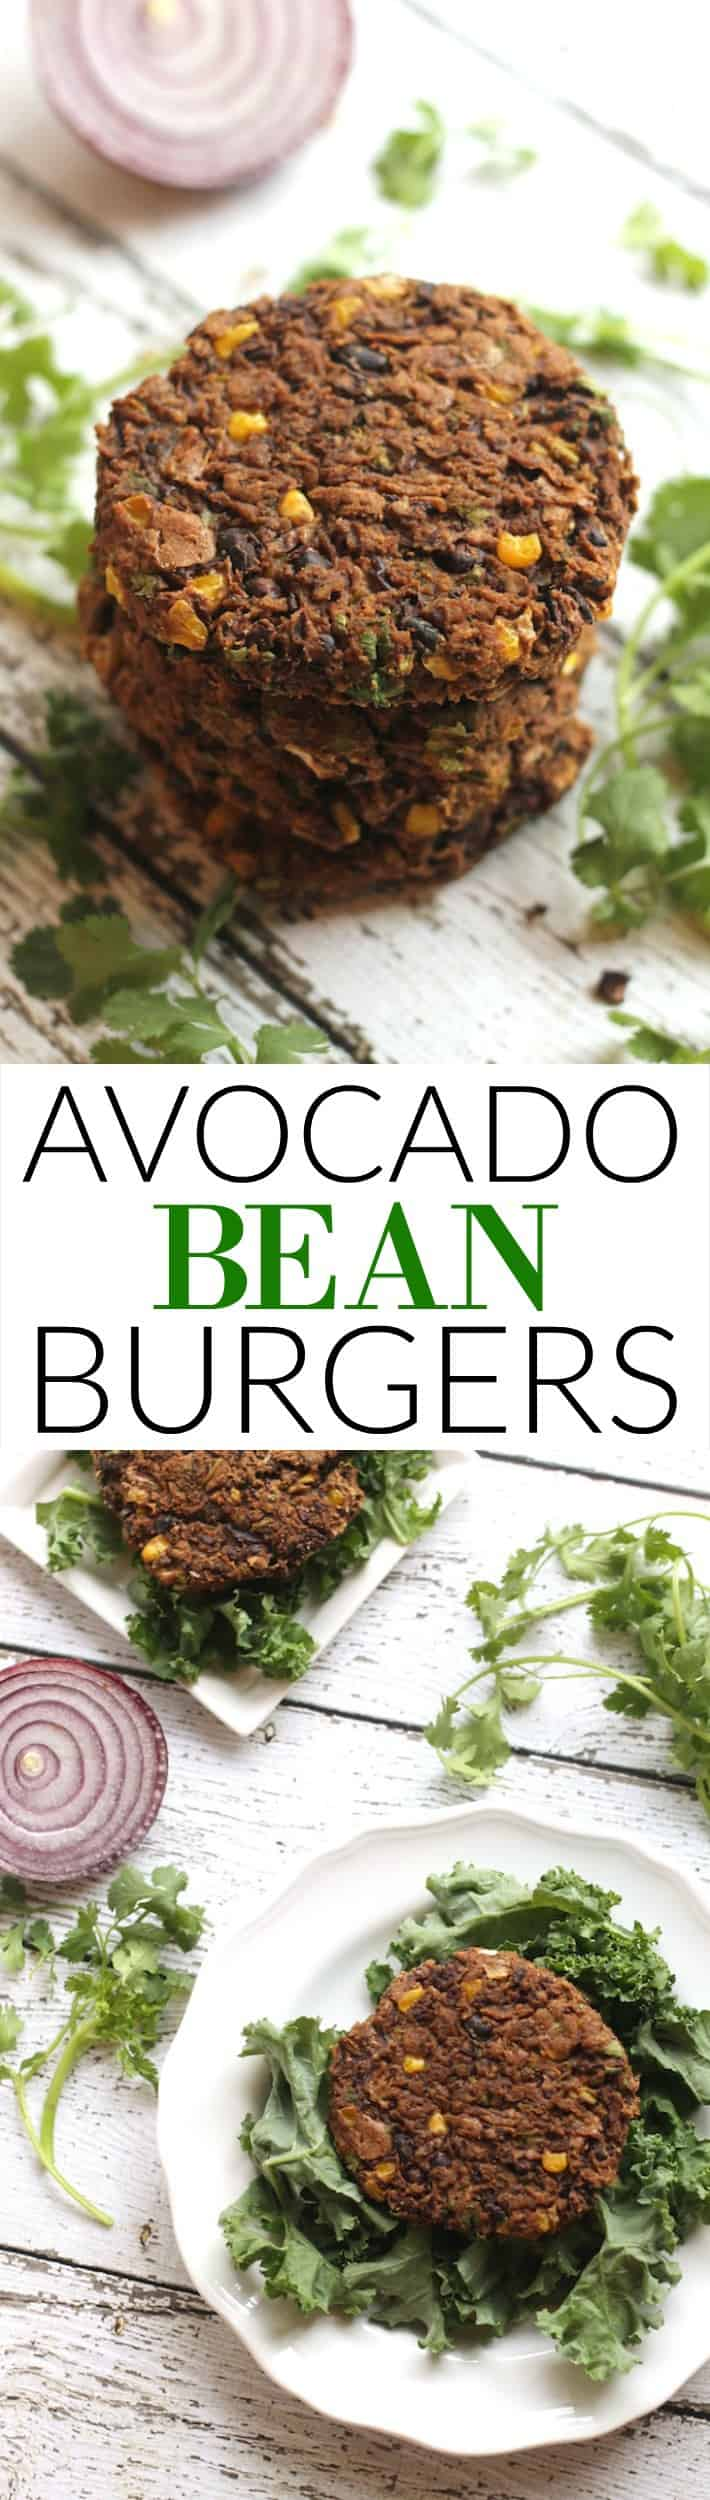 These Mexican-spiced Avocado Bean Burgers make the perfect quick lunch or dinner! They